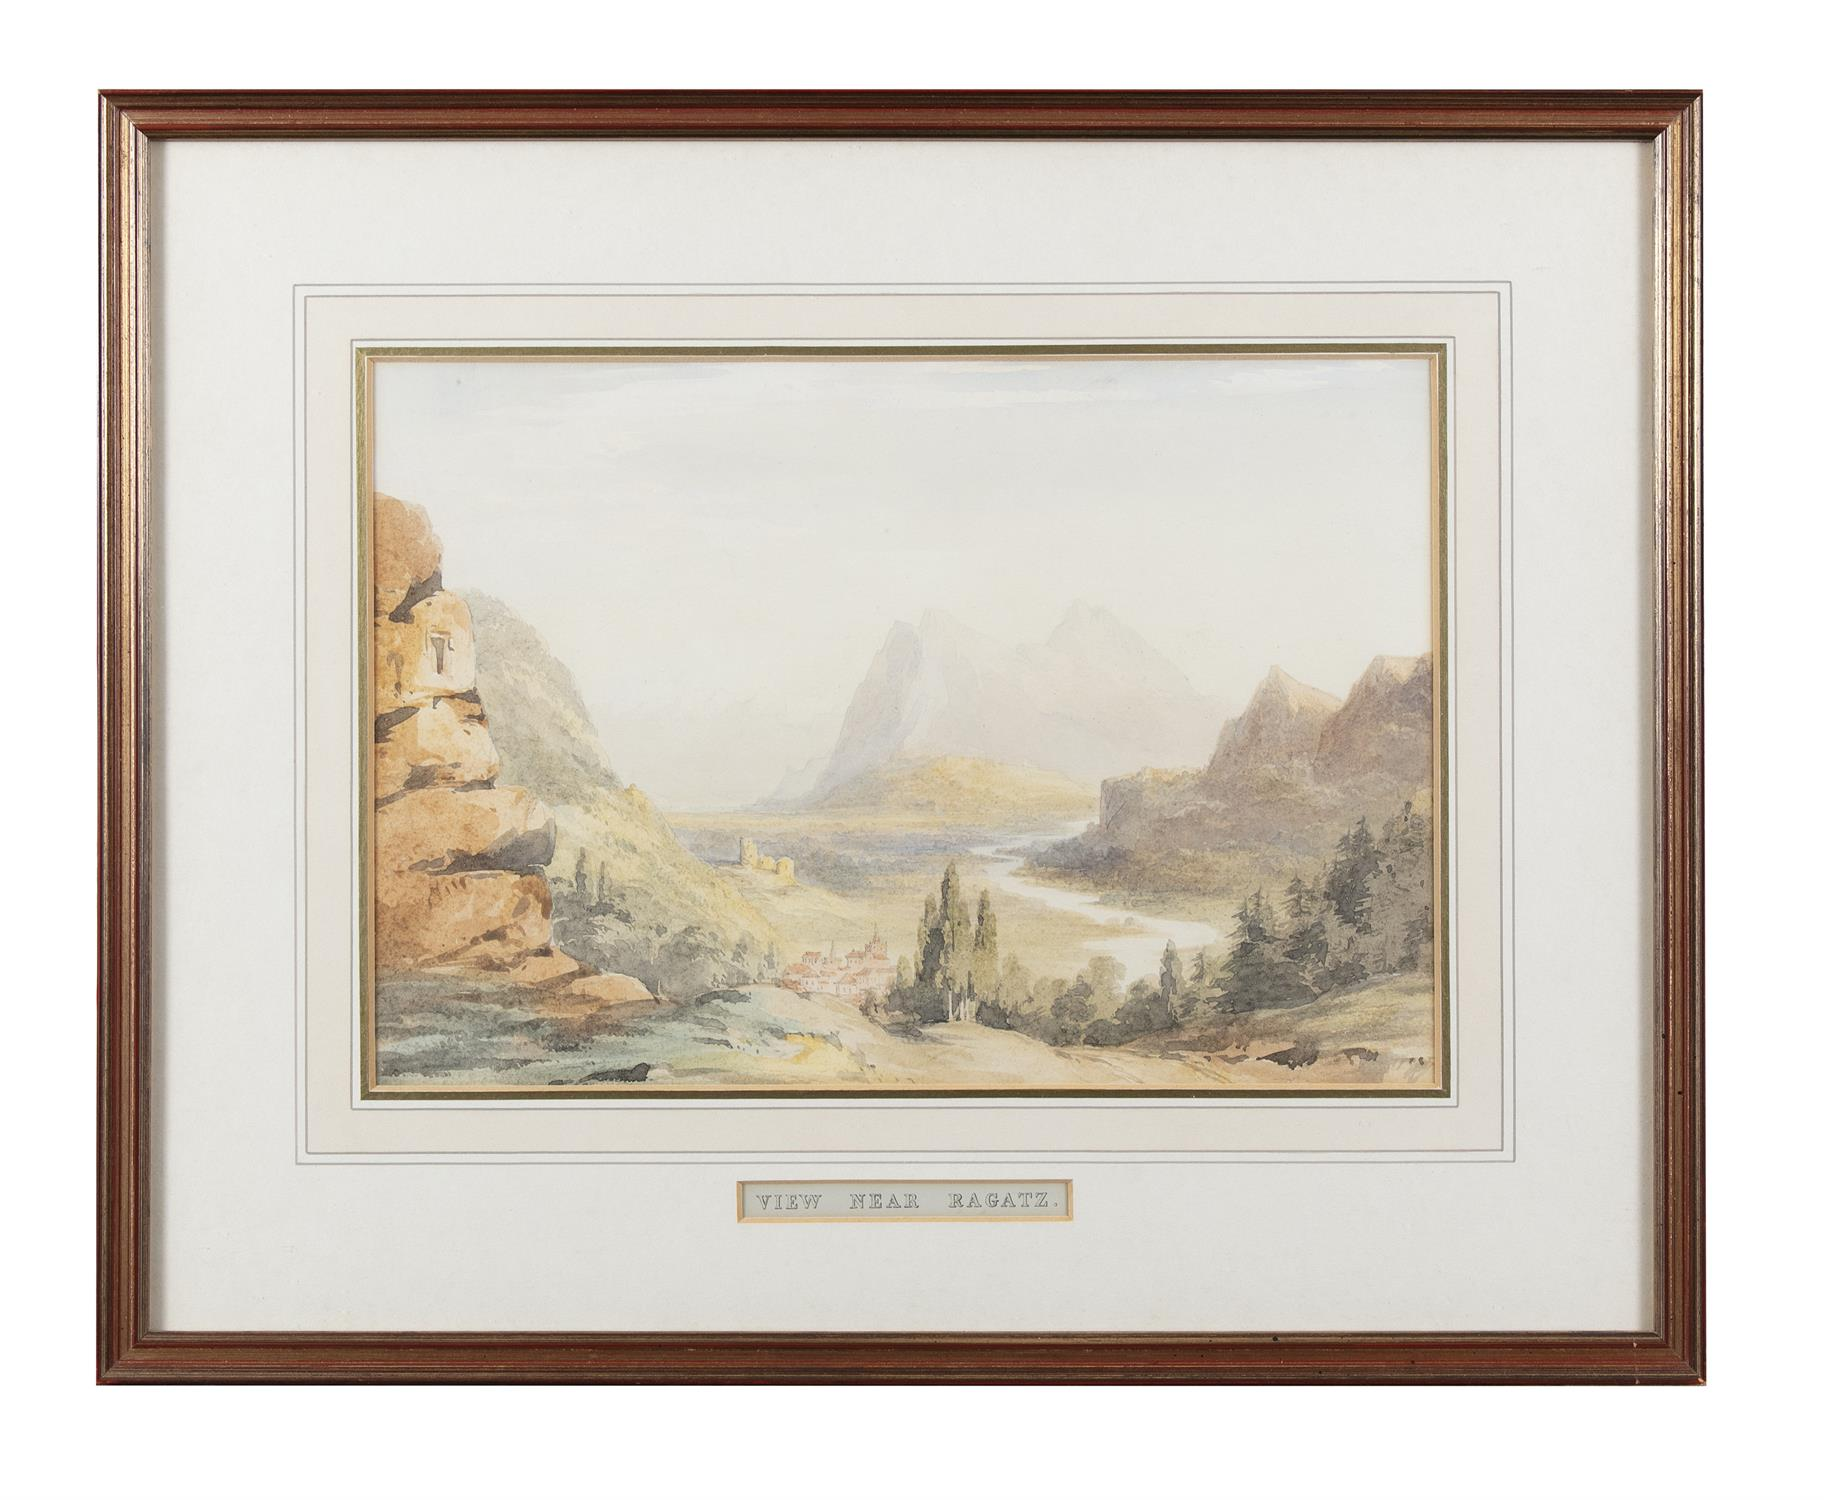 Frederick Marquis of Londonderry 'View Near Achnacarry' and 'View Near Ragatz' Three watercolours, - Image 5 of 8